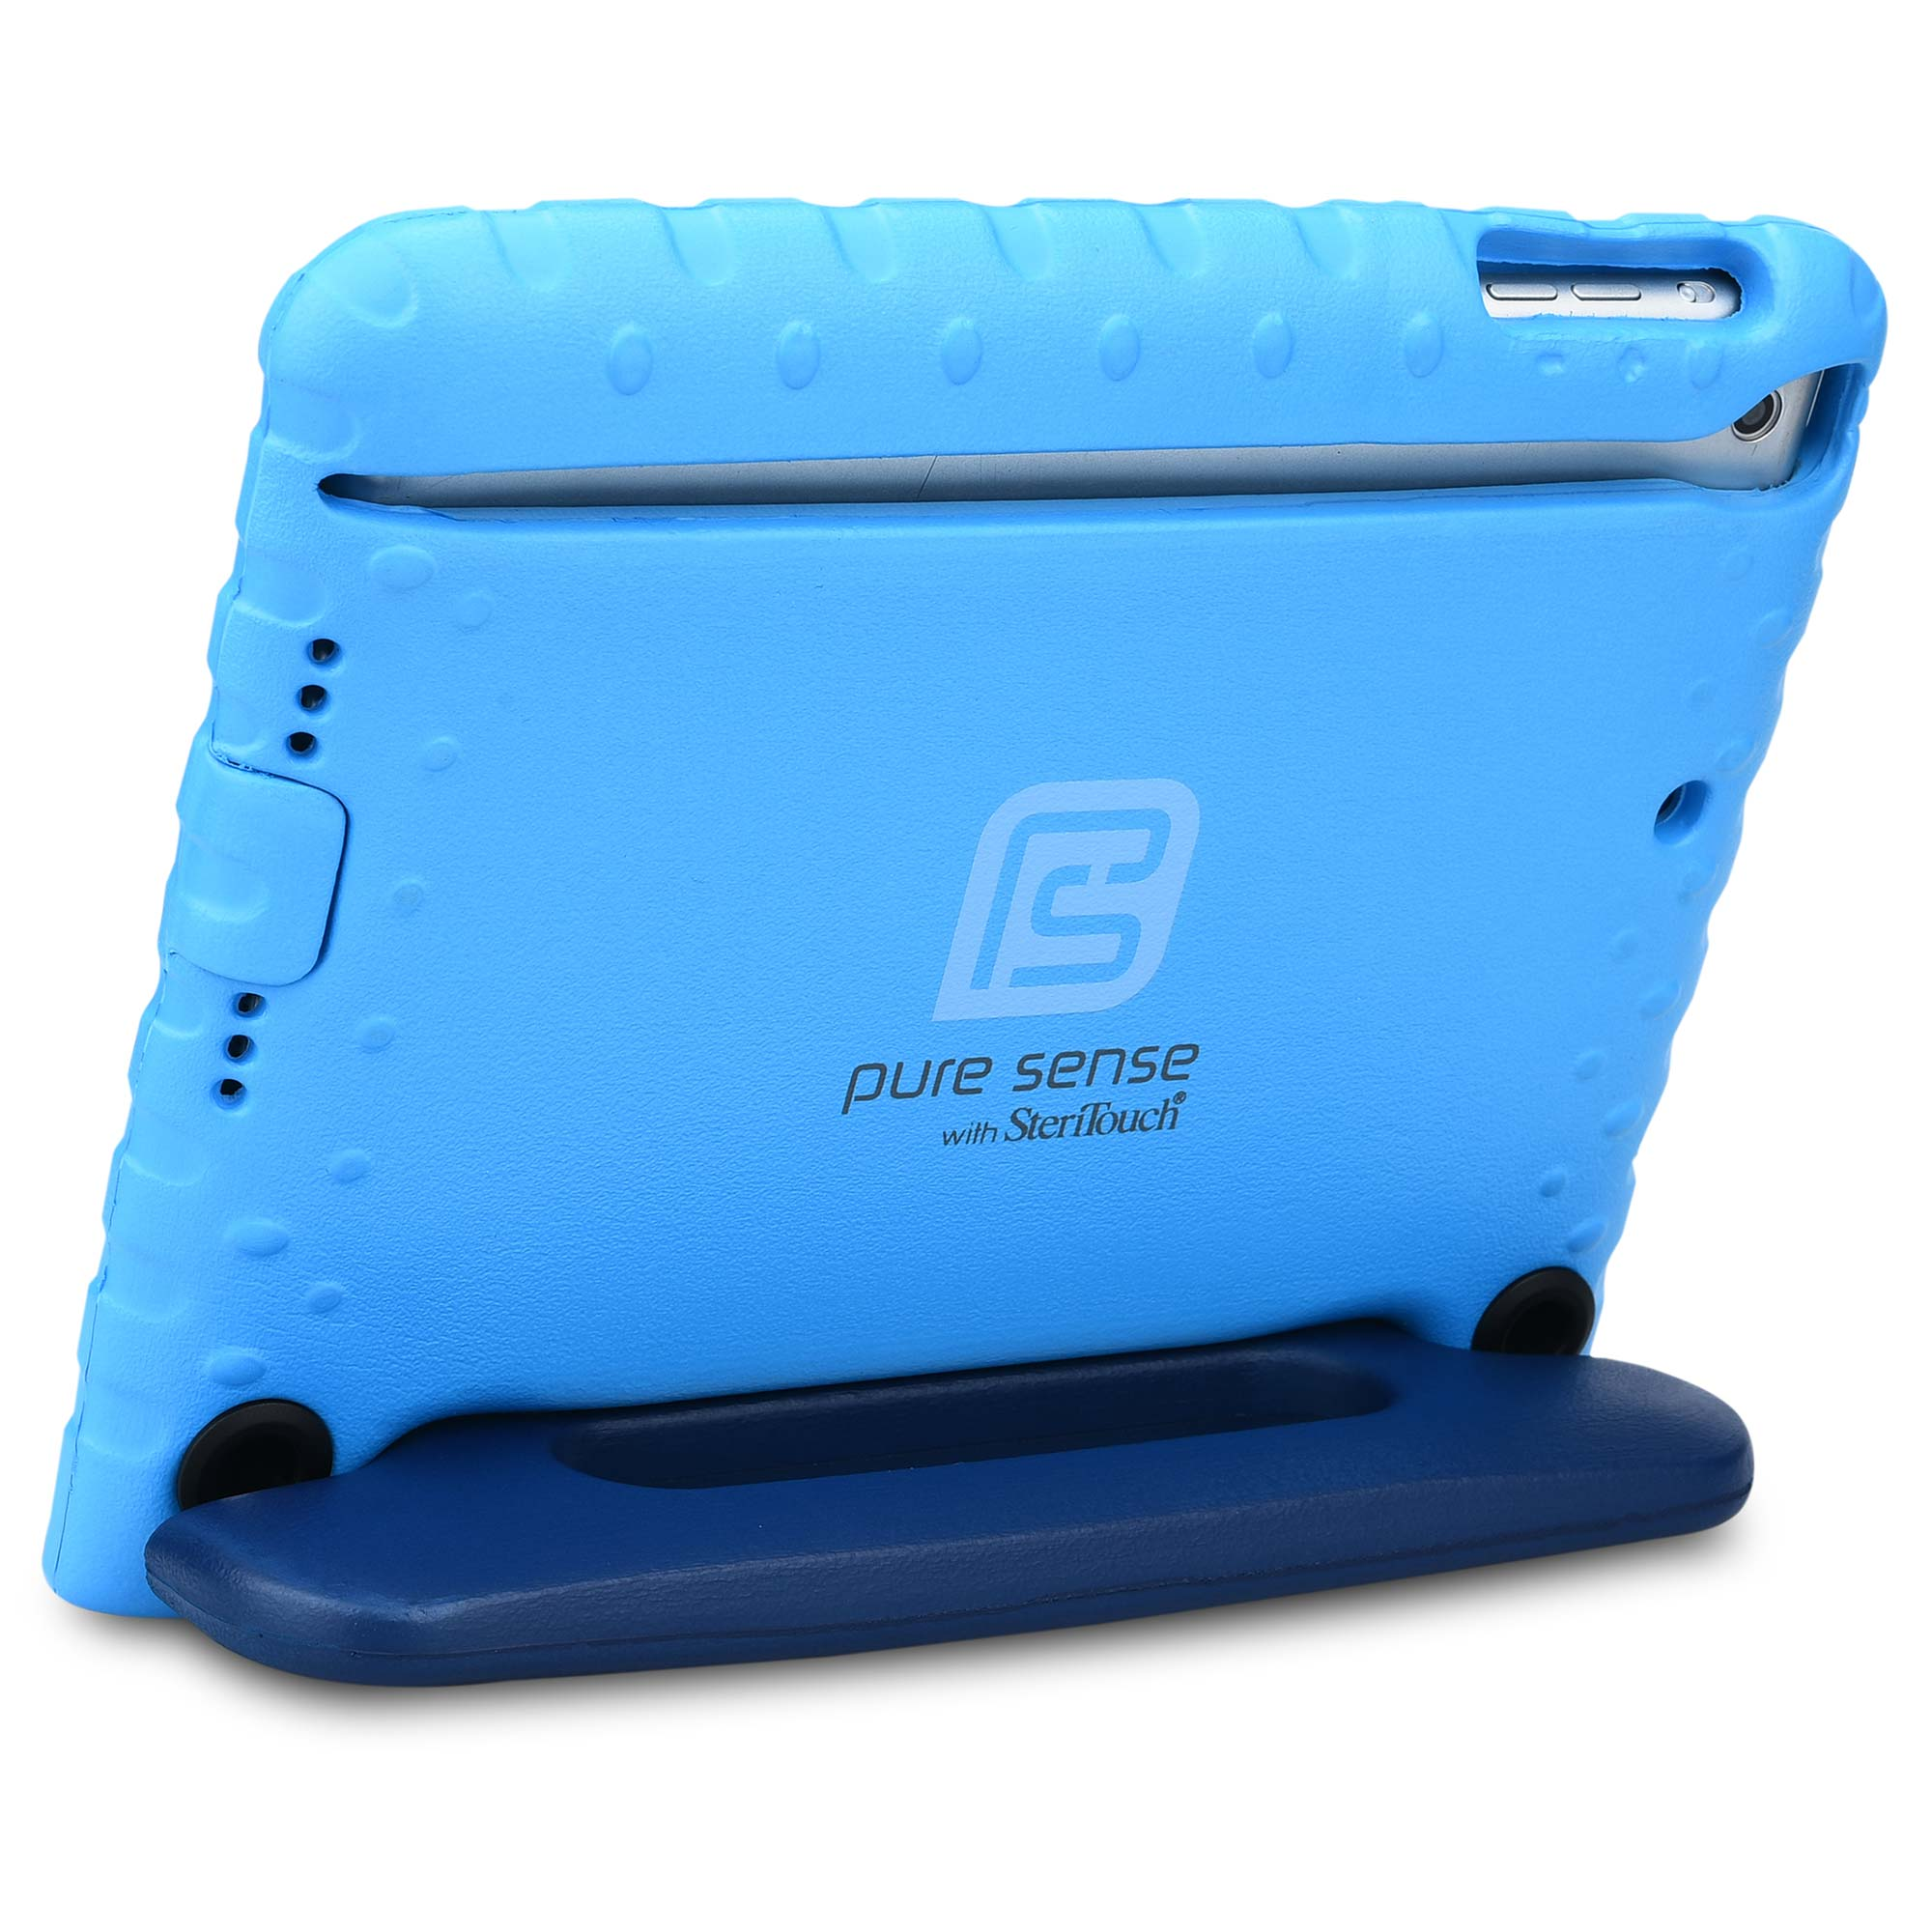 psc001blu080_pure_sense_buddy_rugged_anti_bacteria_germ_free_kids_case_09